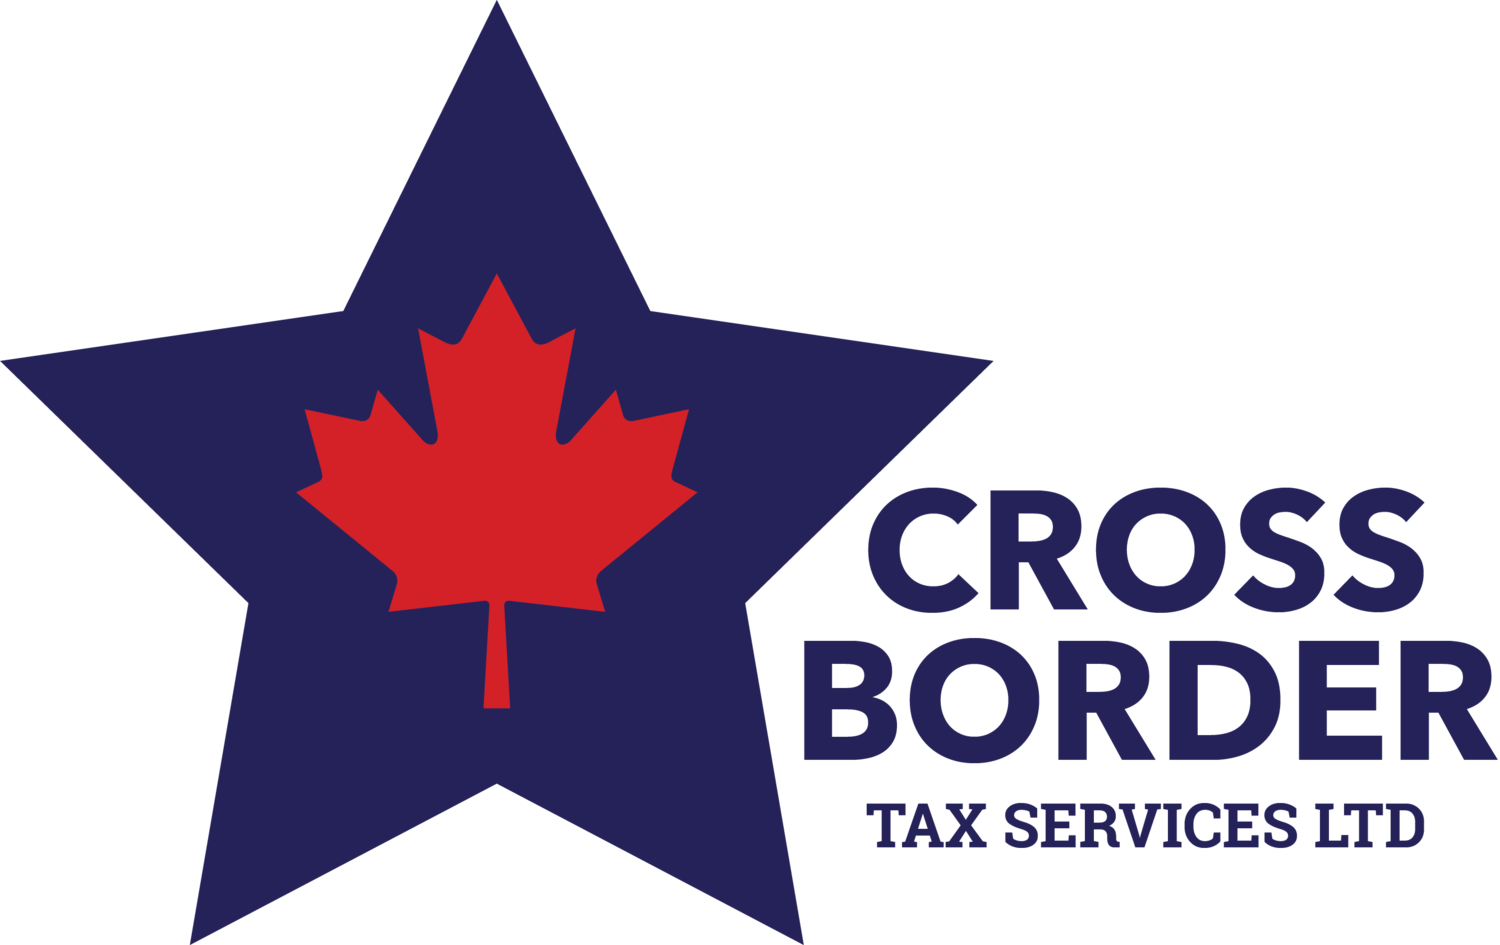 Cross Border Tax